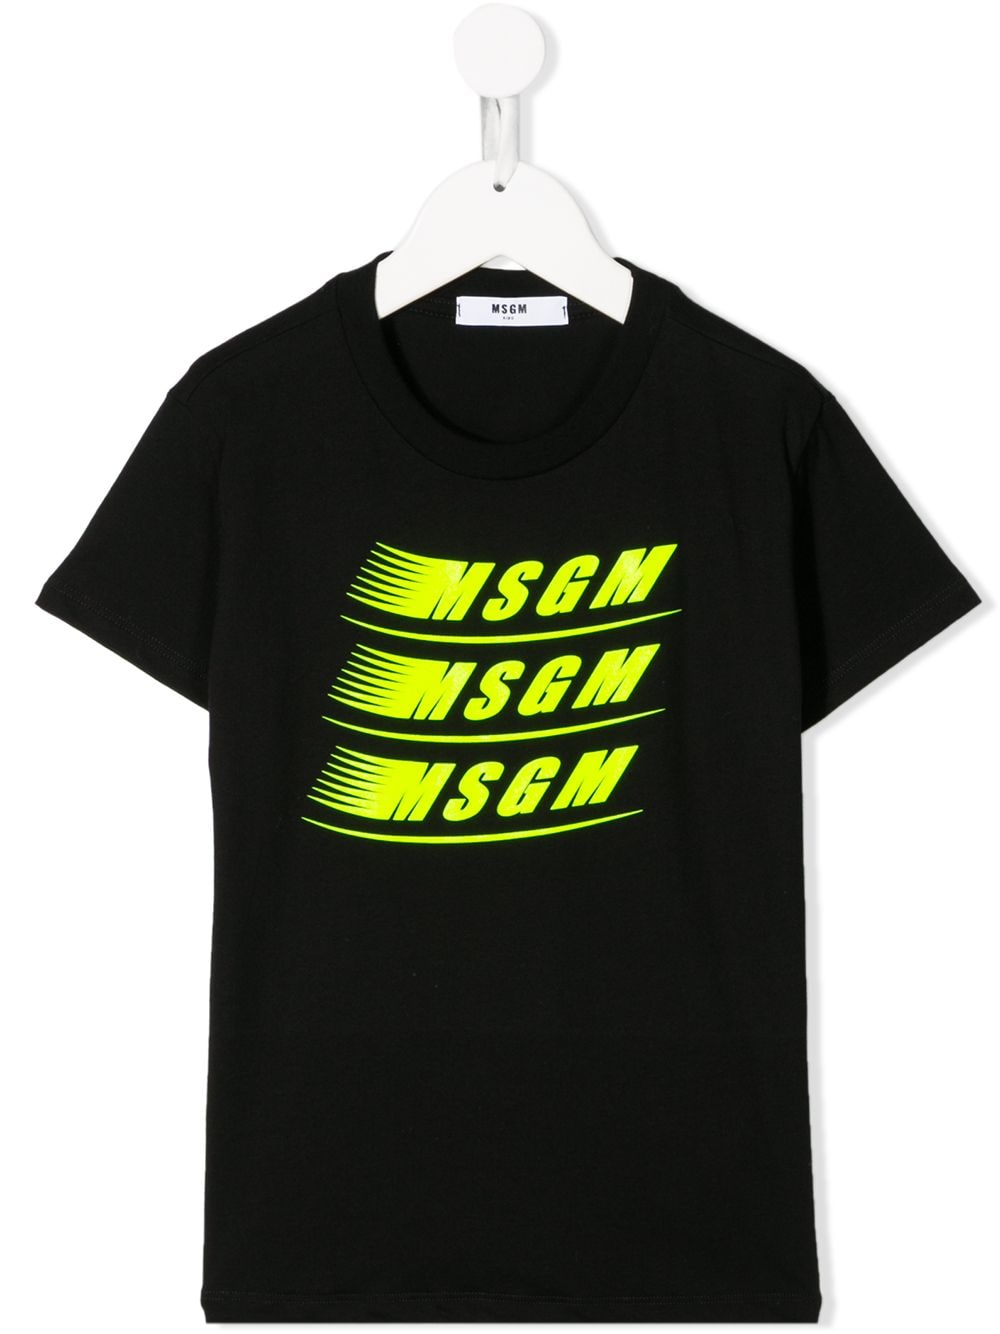 MSGM Black T-shirt with dashing yellow logo